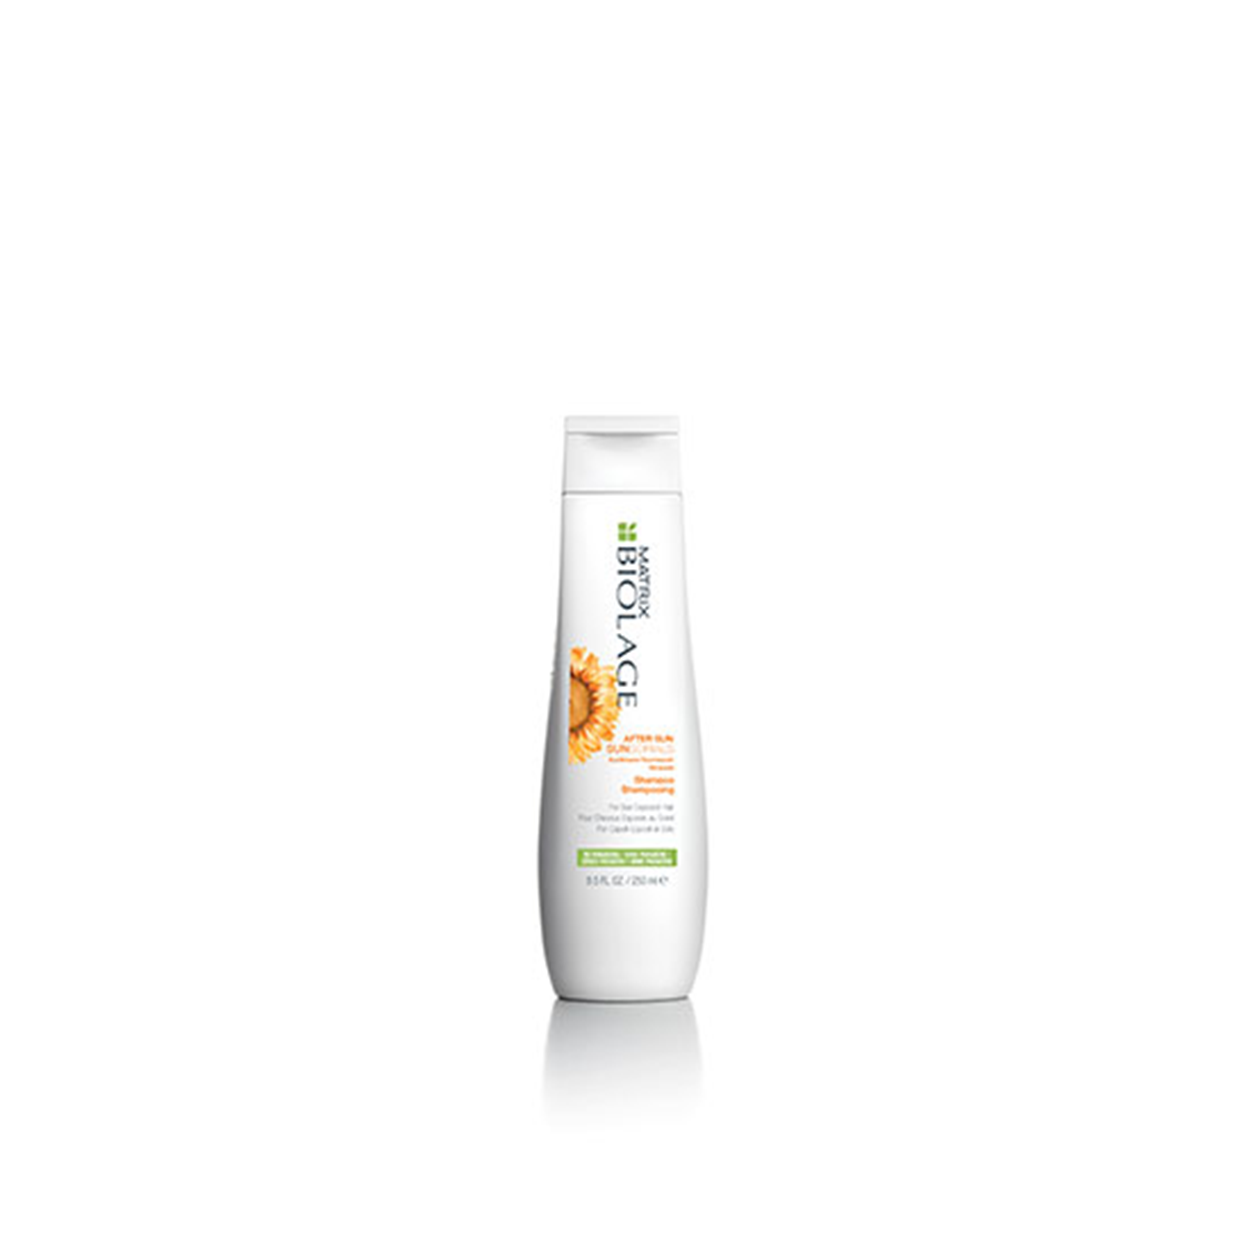 Biolage Sunsorials After Sun Shampoo Sun Protect Shampoo for Sun Exposed Hair